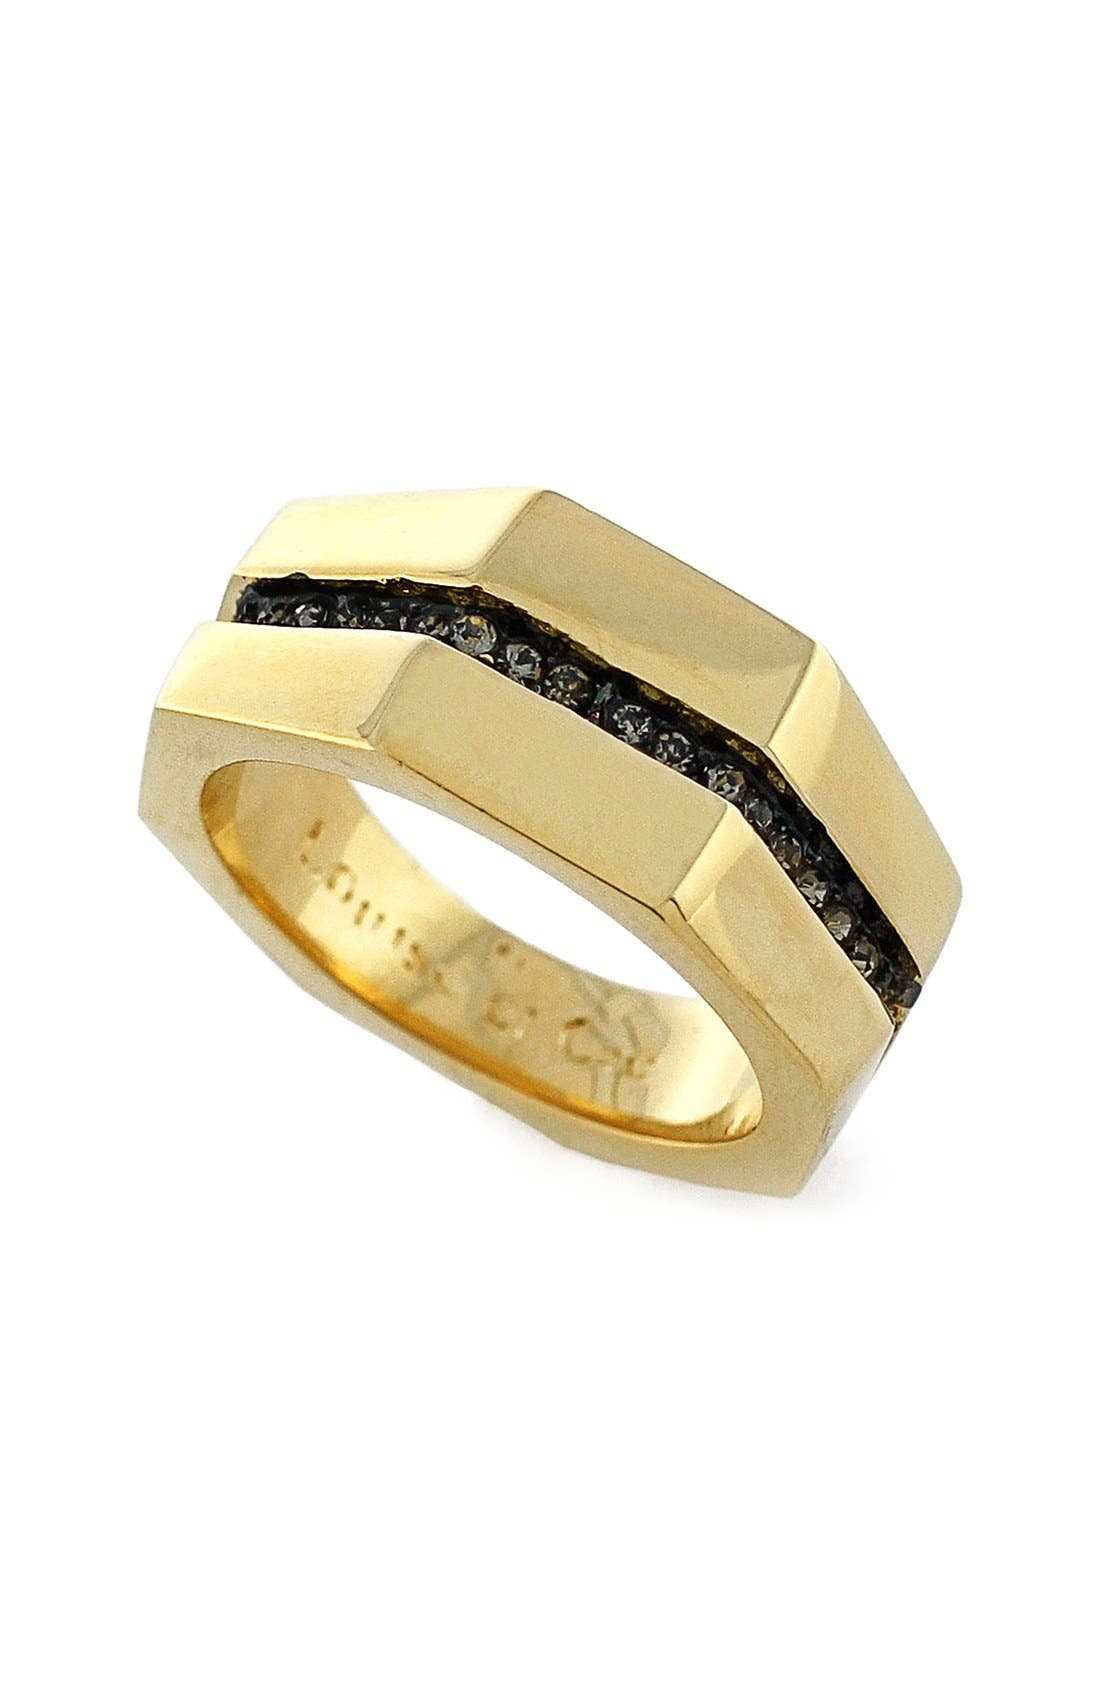 Alternate Image 1 Selected - Louise et Cie 'Kammenstrat' Split Pavé Band Ring